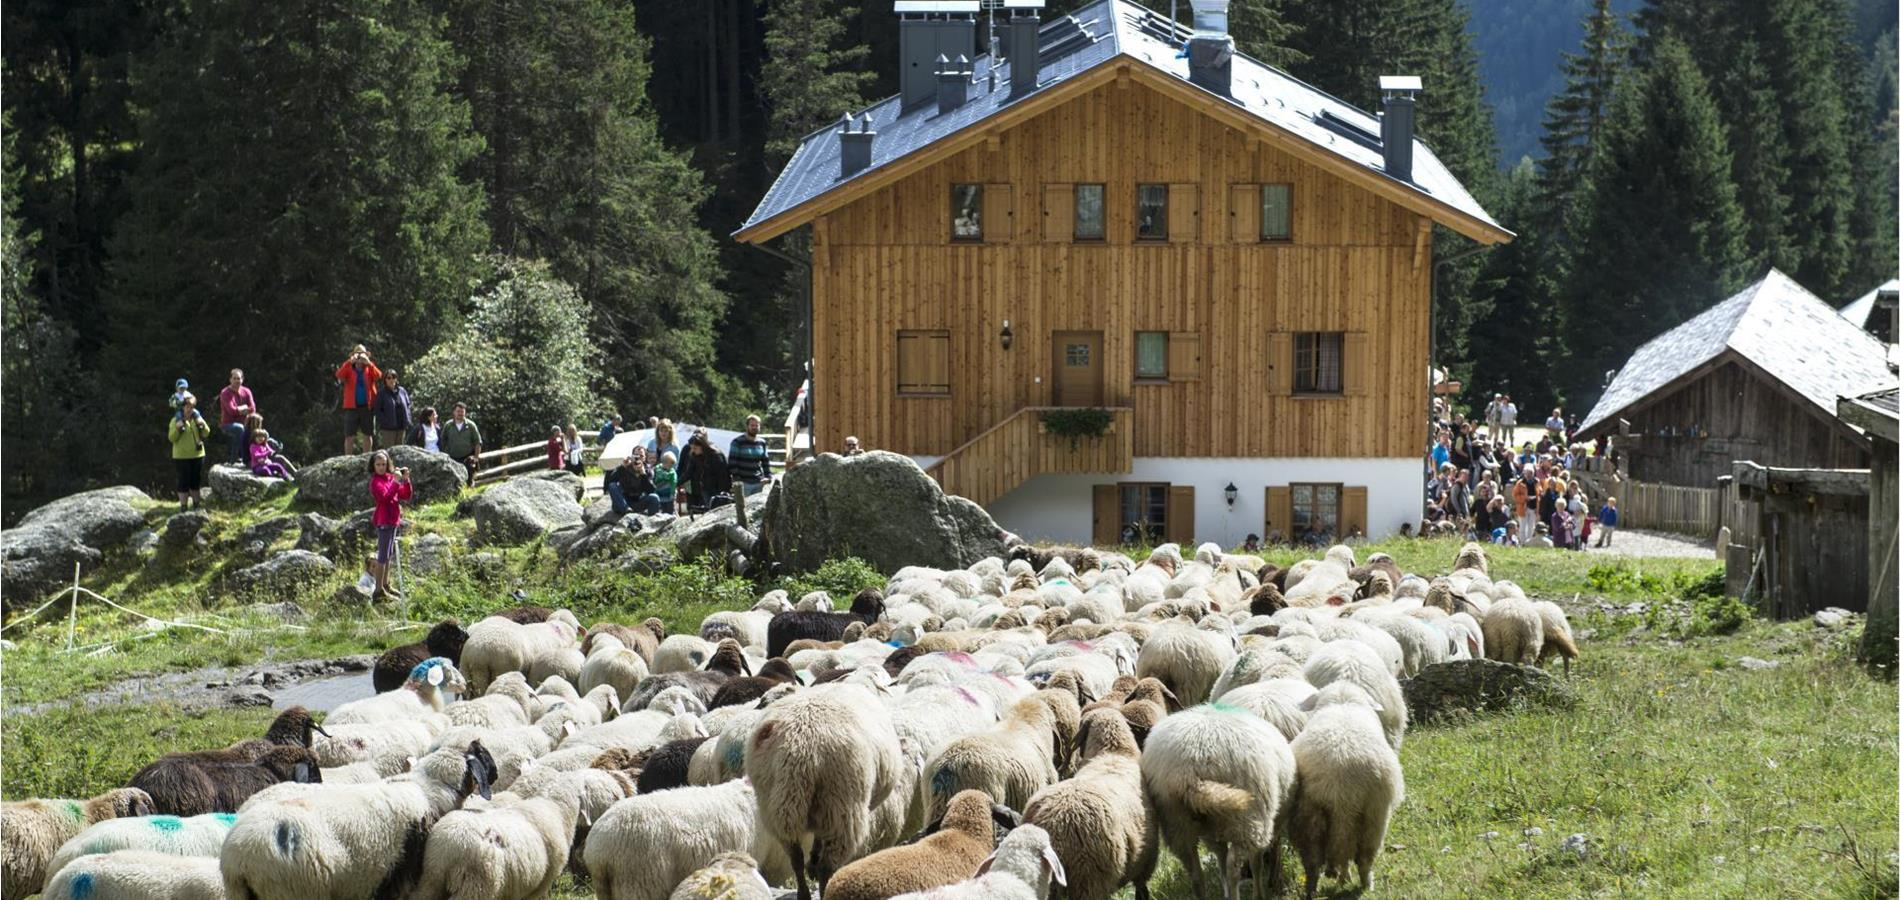 The transhumance of the returning sheep herds in Parcines